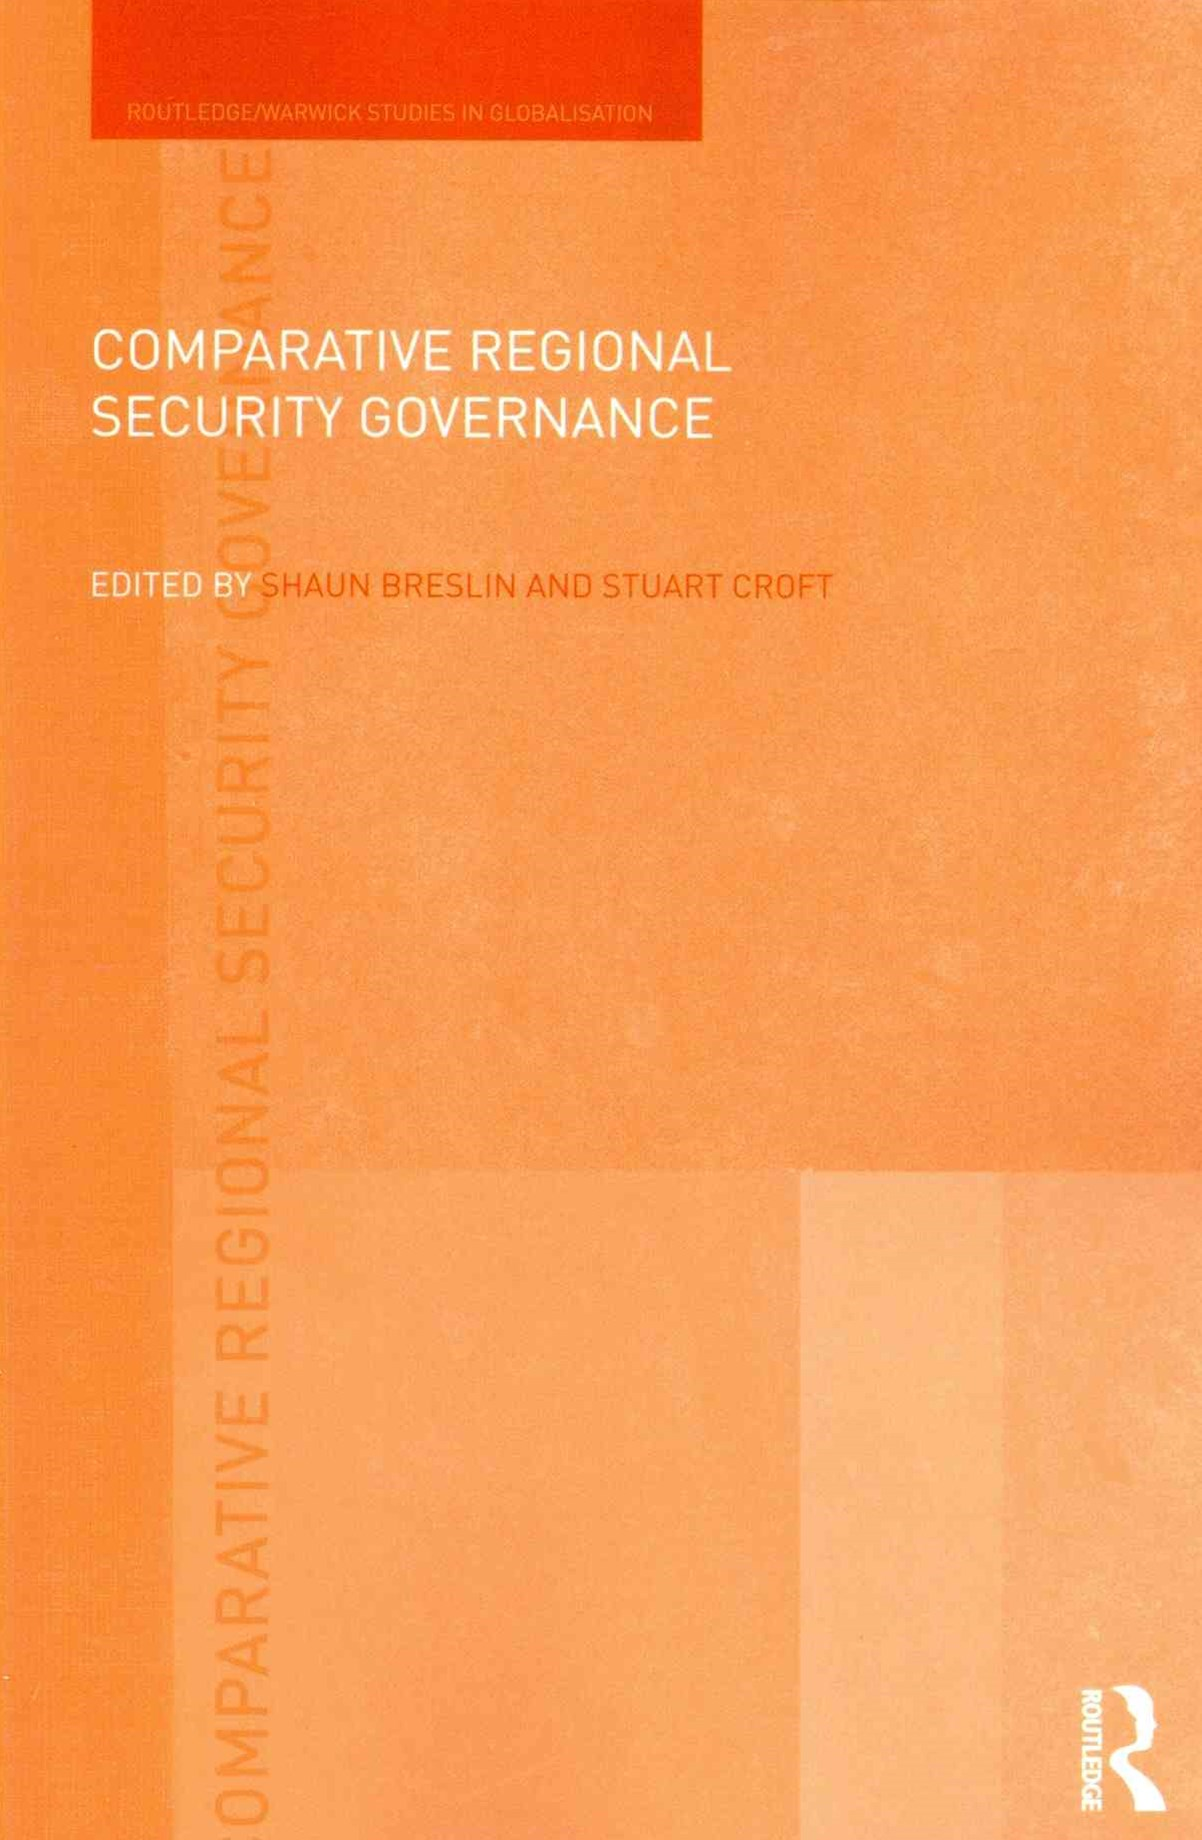 Comparative Regional Security Governance